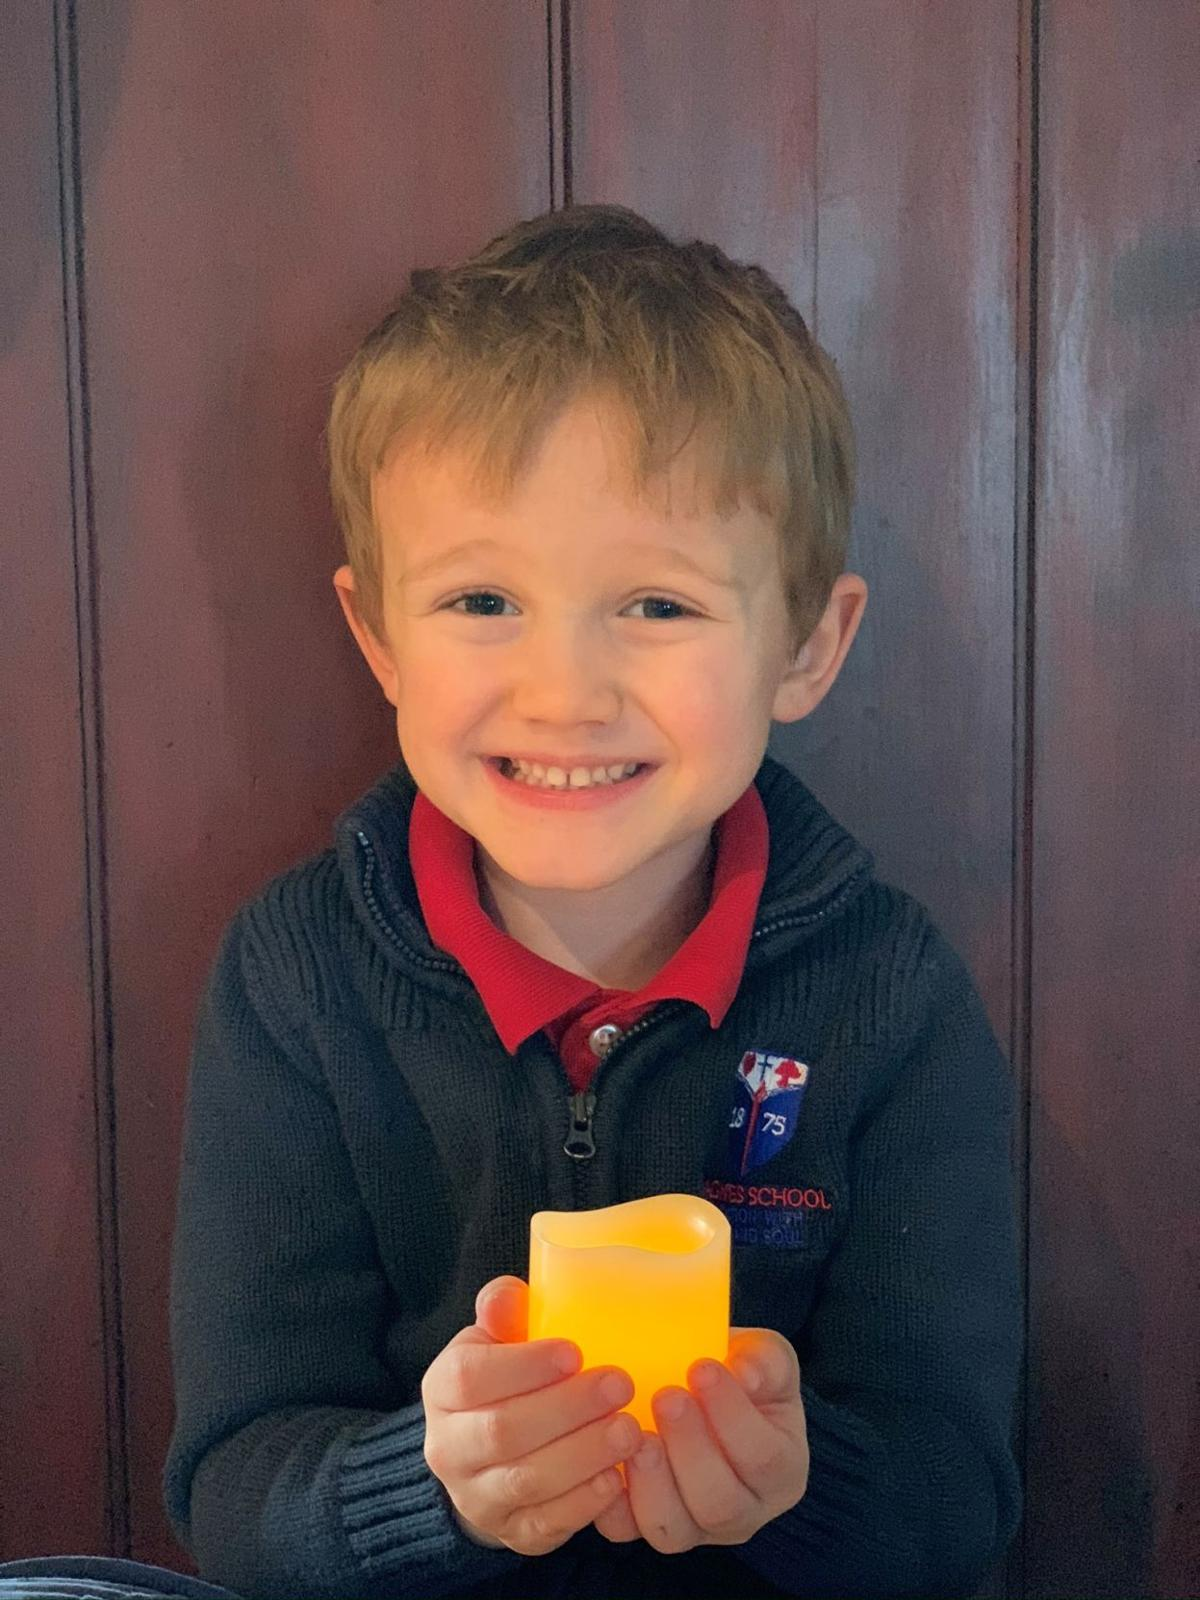 St. Agnes School student, Cole, encourages others to be a light in the dark.